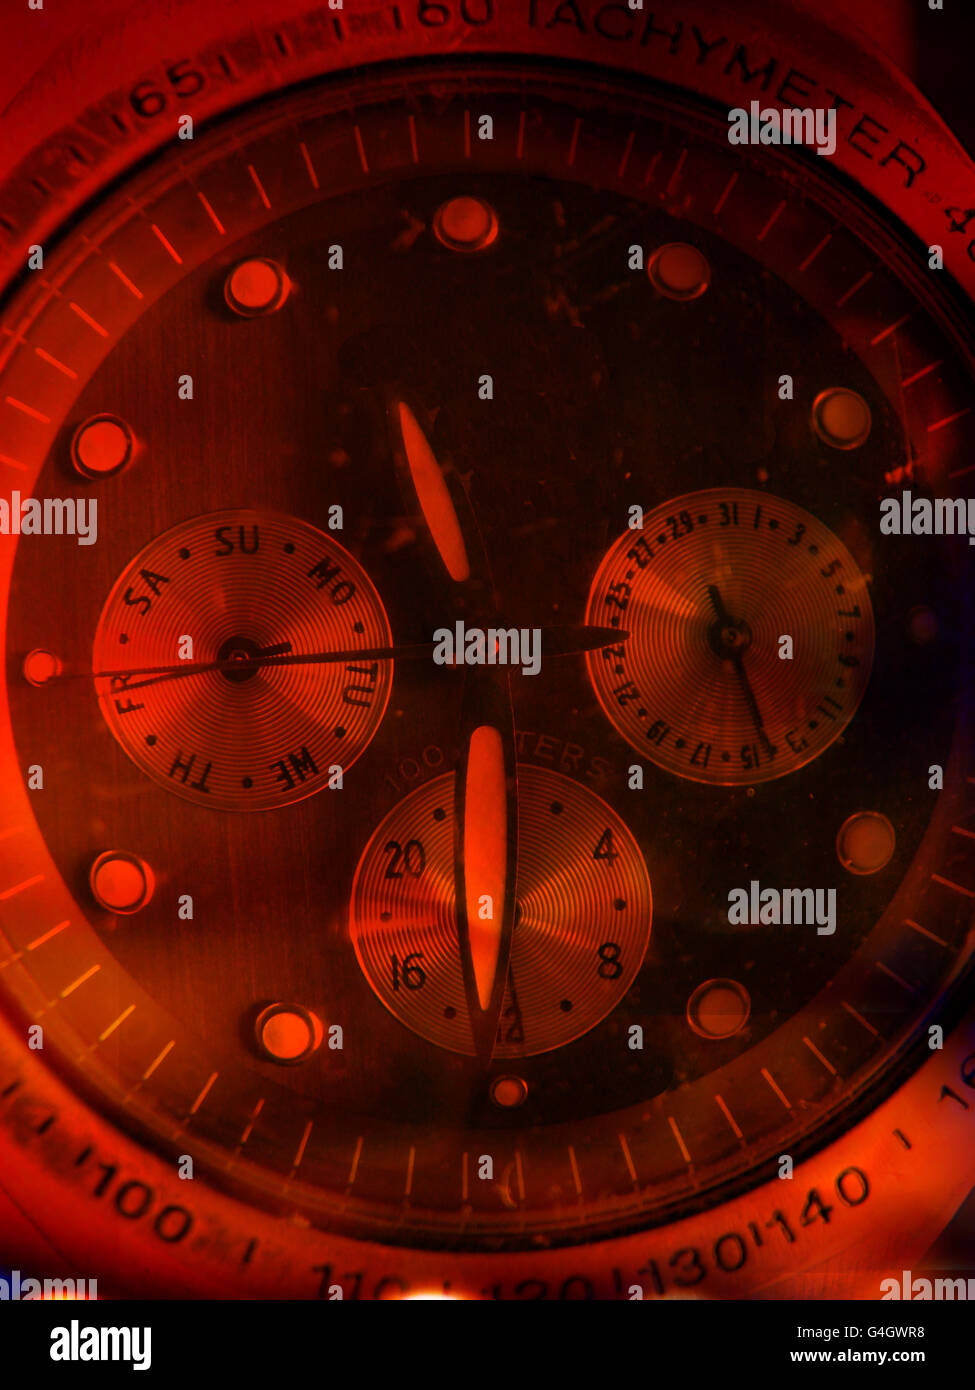 Abstract Watch - Stock Image